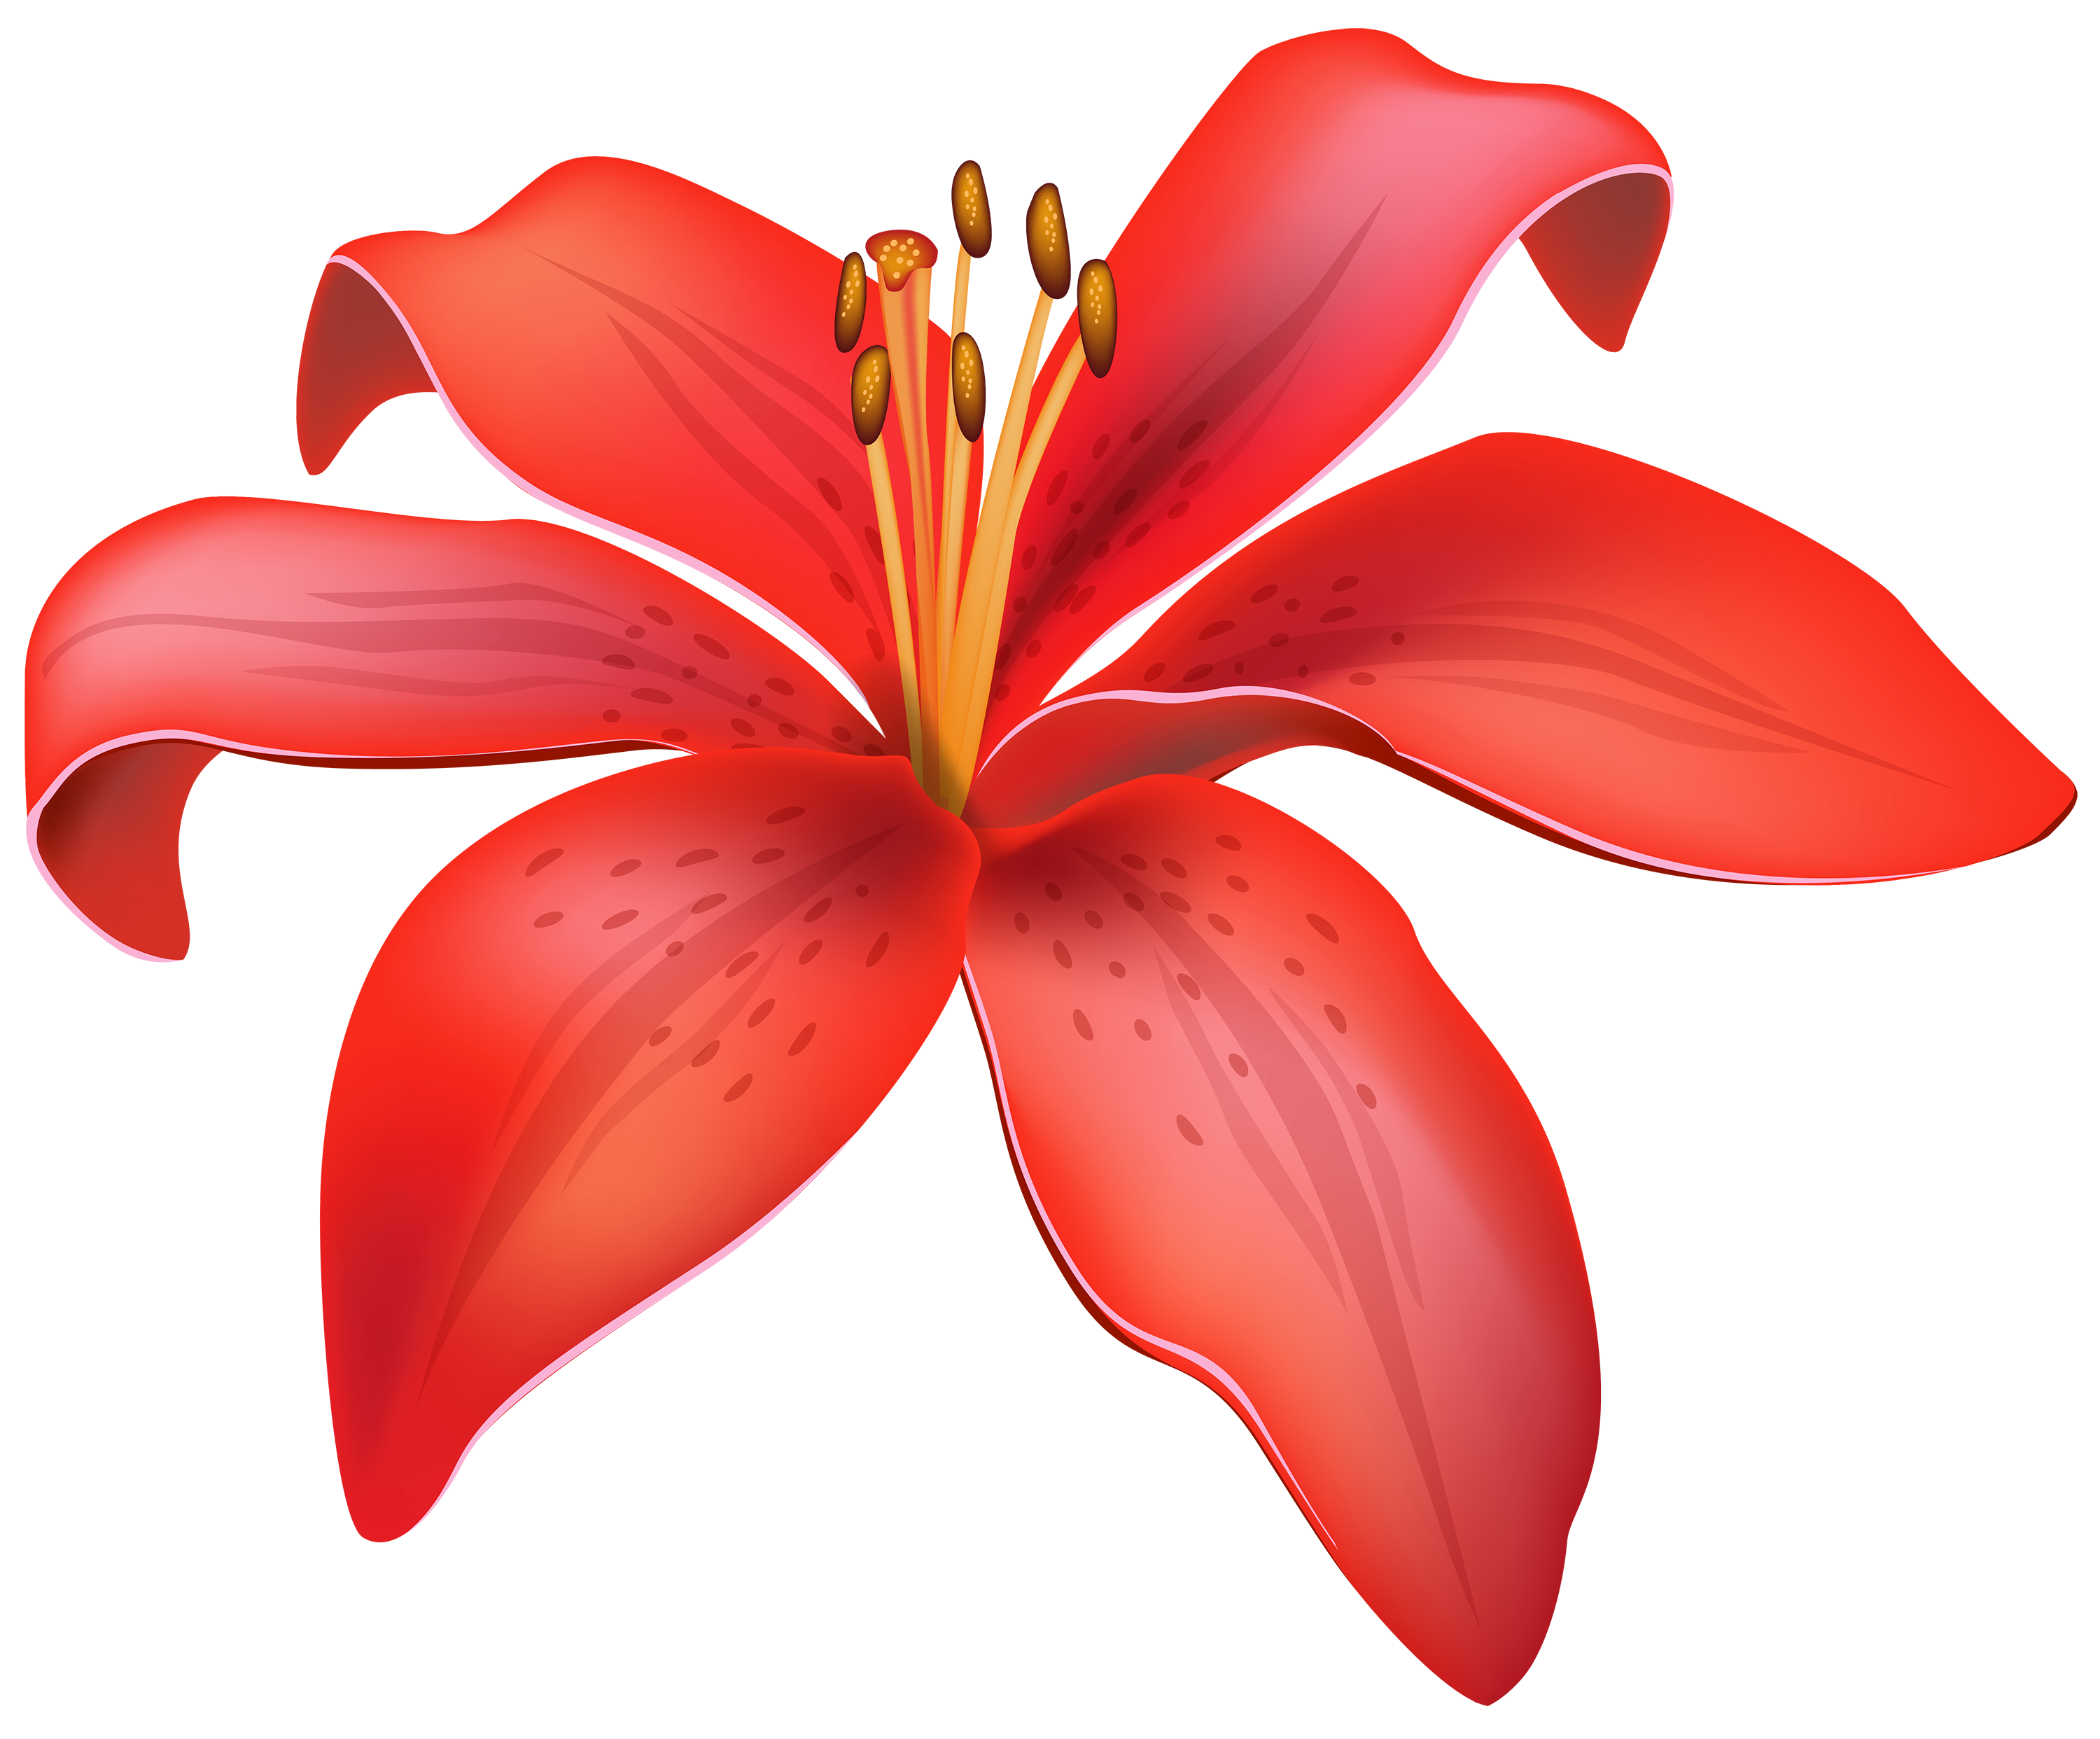 Flower clipart png. Red lily best web